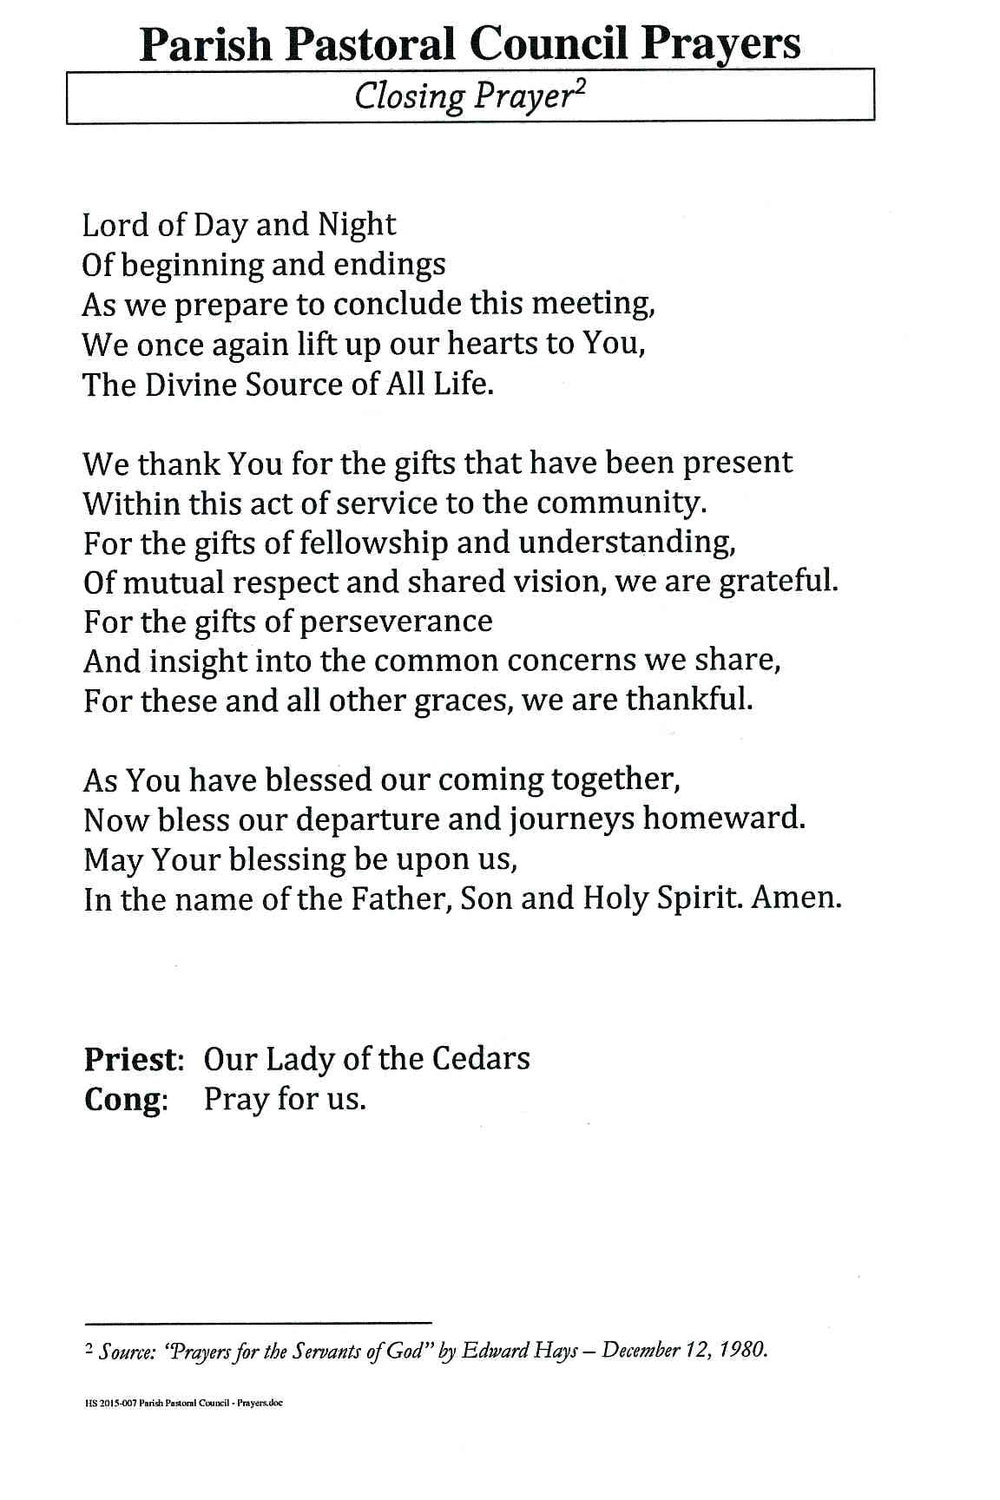 Parish Council Prayers 2015-3.jpg